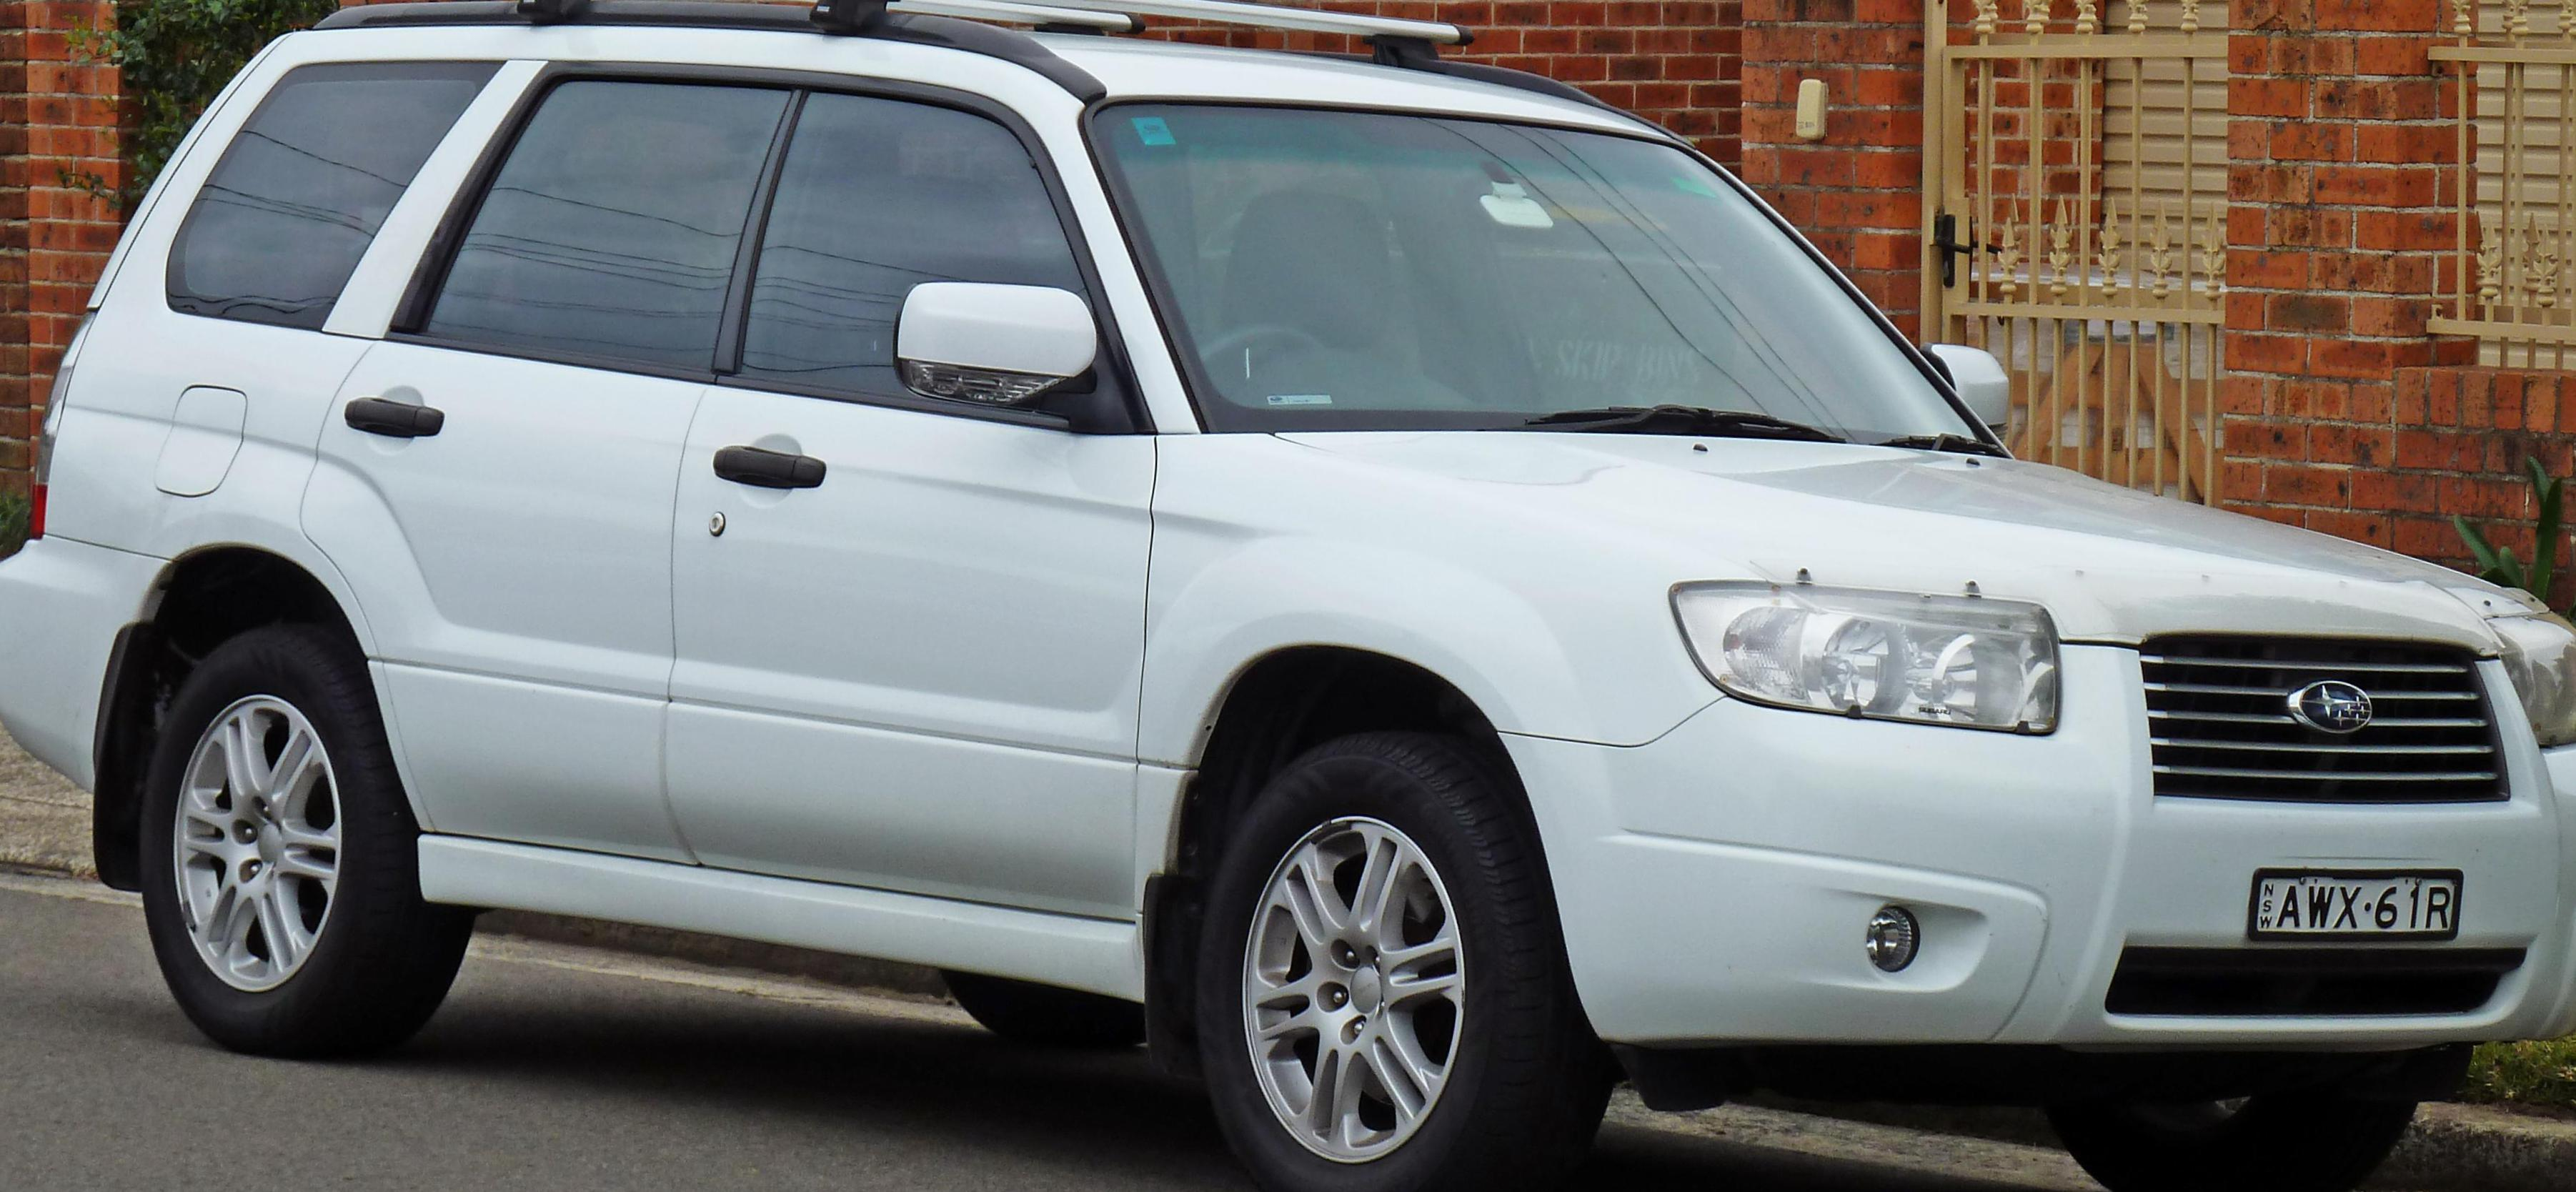 Subaru Forester models 2006